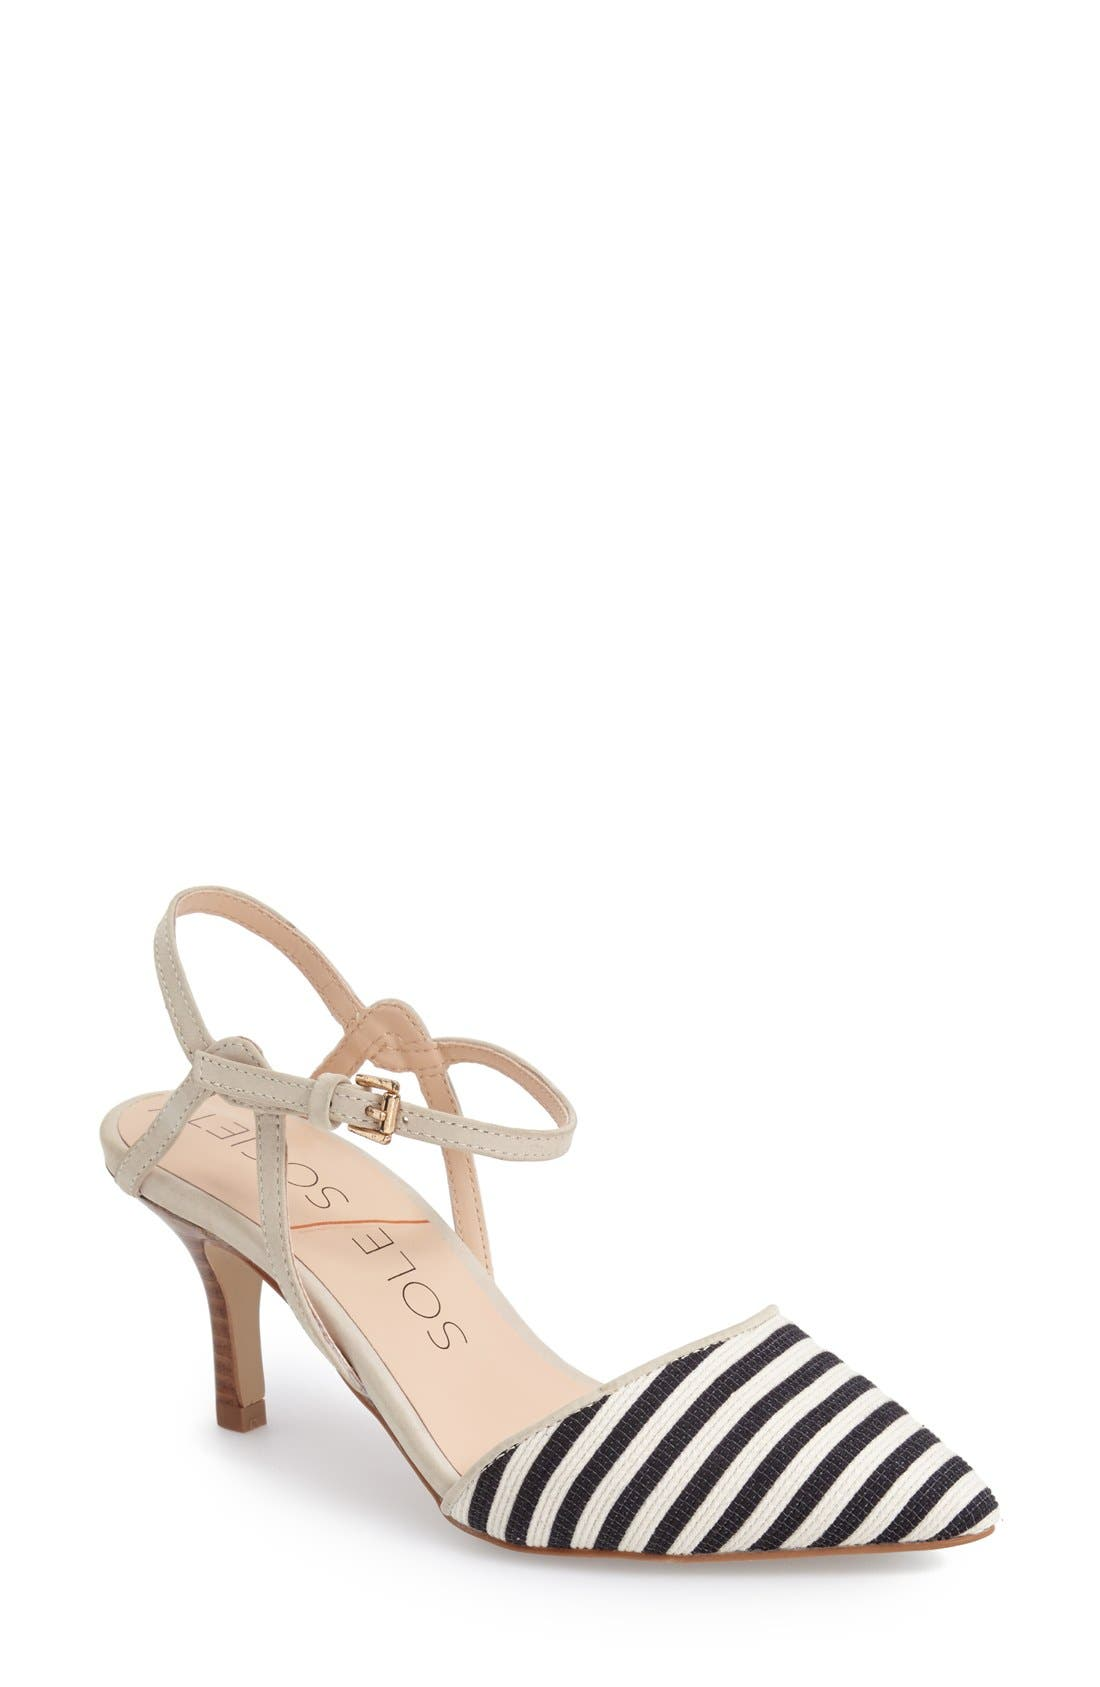 Alternate Image 1 Selected - Sole Society 'Rima' Ankle Strap Pump (Women)